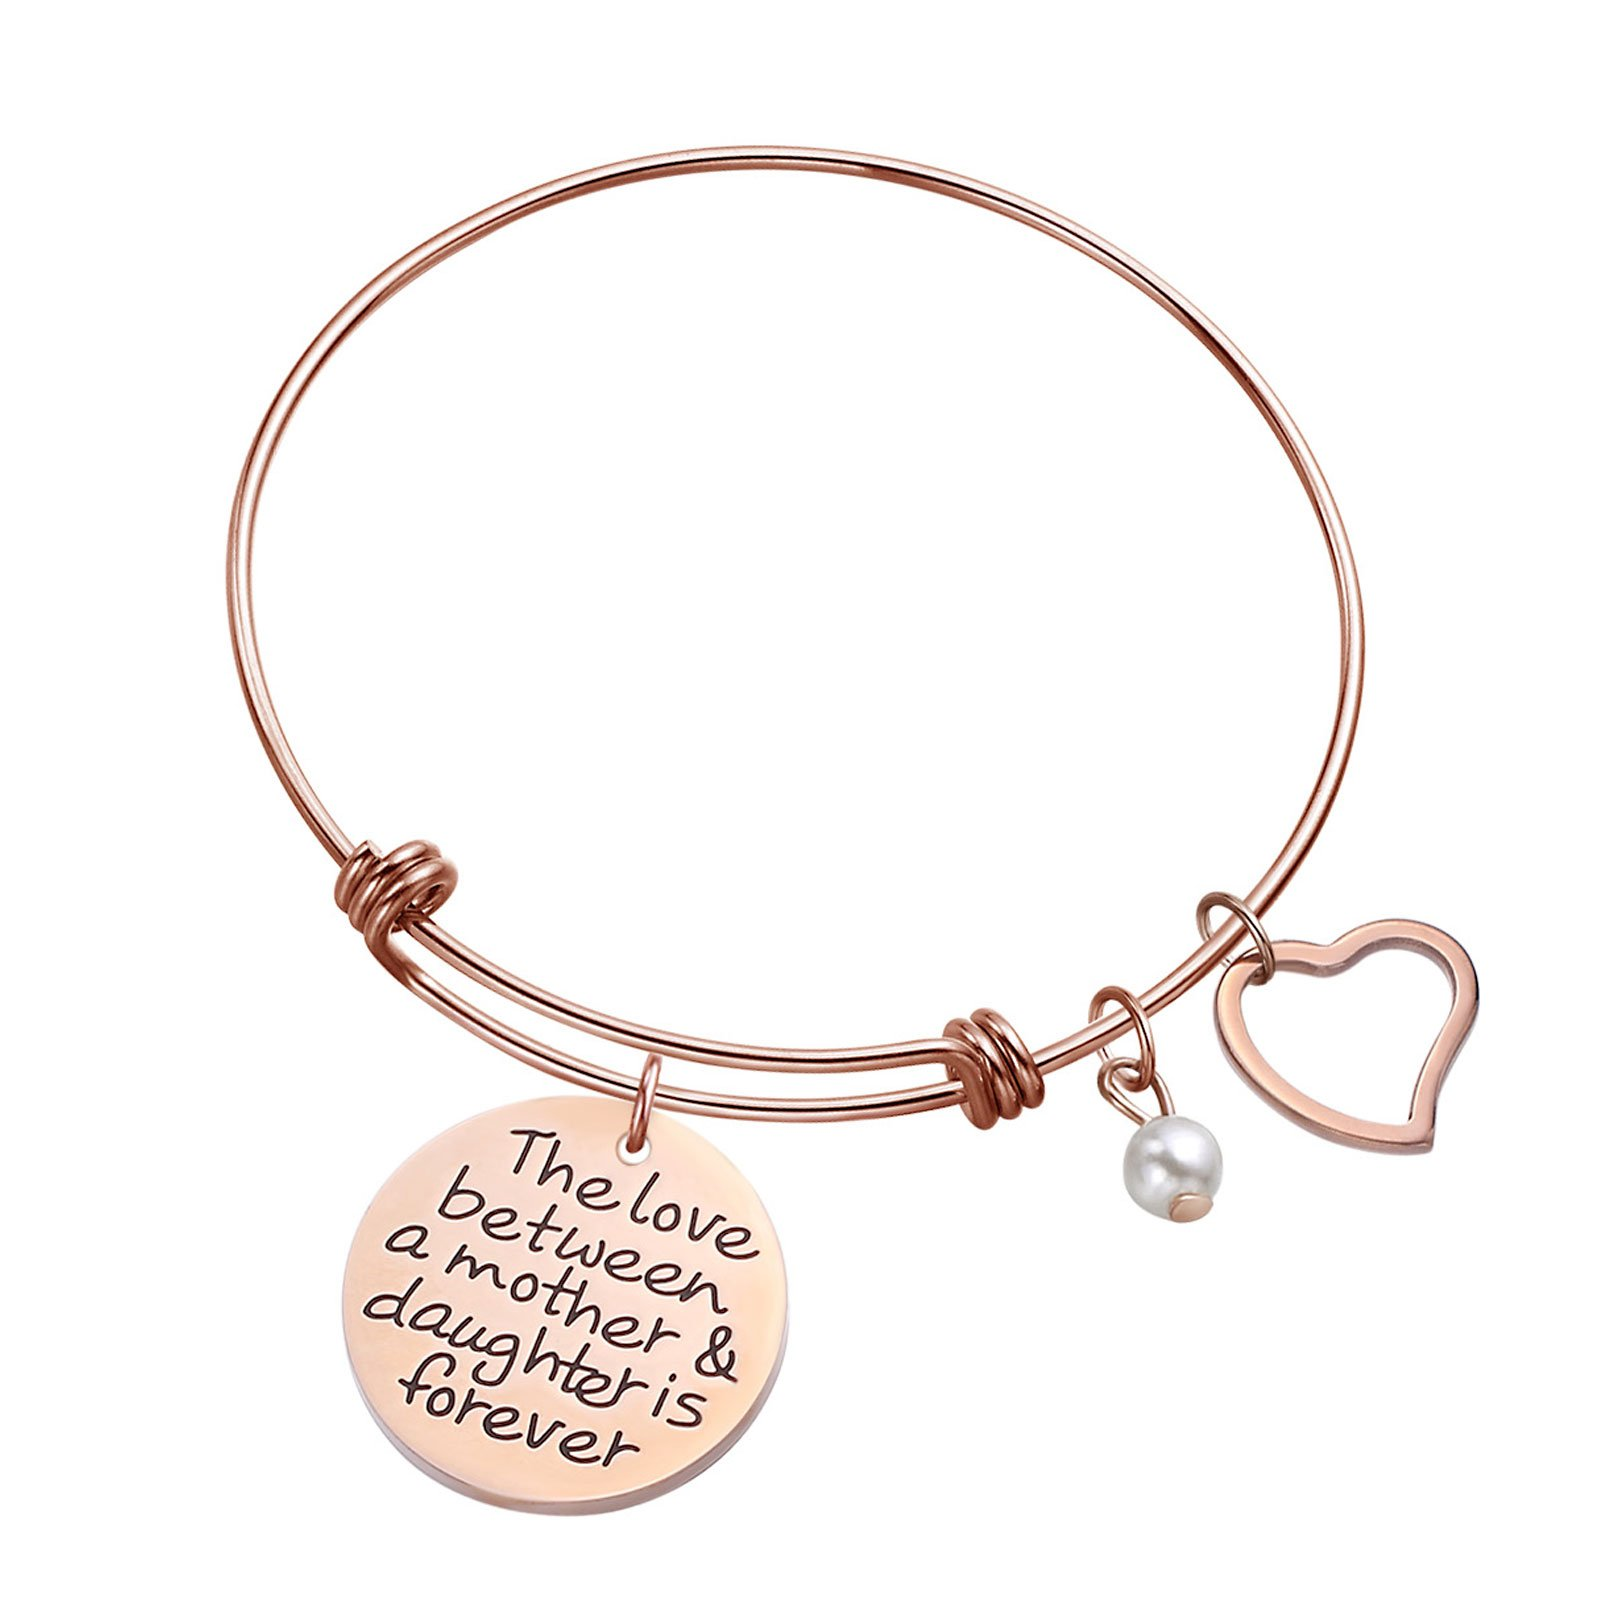 Sunflower Jewellery Charm Bracelet Adjustable Bangle Gift For Women Girl Sister Mother Friends (Rose Gold The Love Between Mother and Daughter Is Forever)